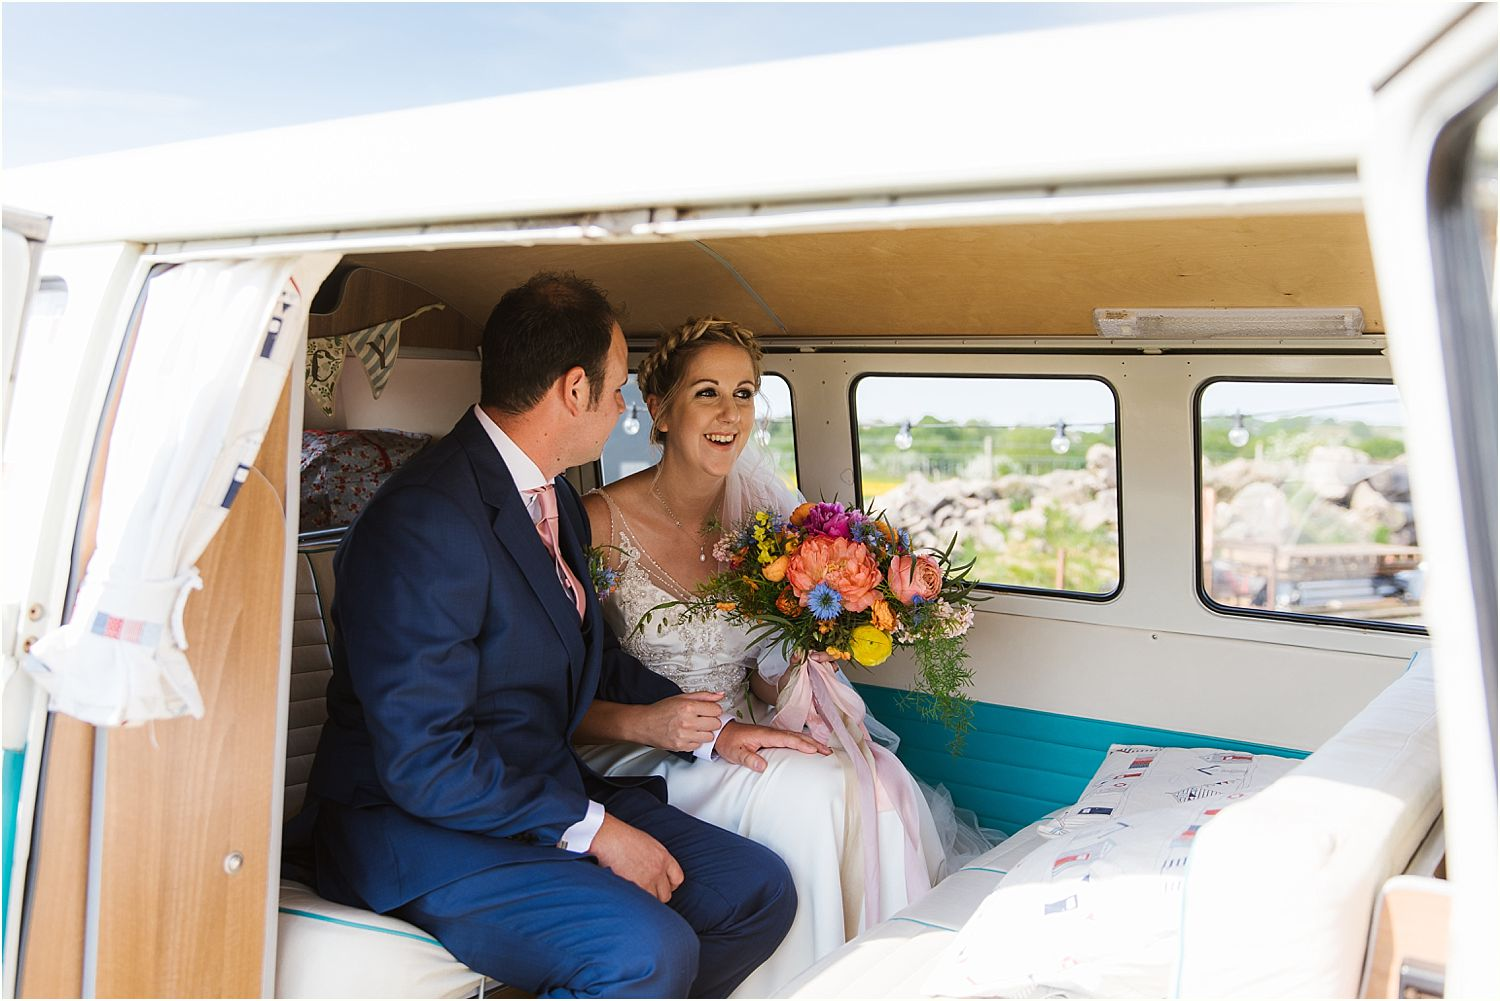 Bride and groom in VW camper van from Nostalgic Campers of Knutsford Cheshire